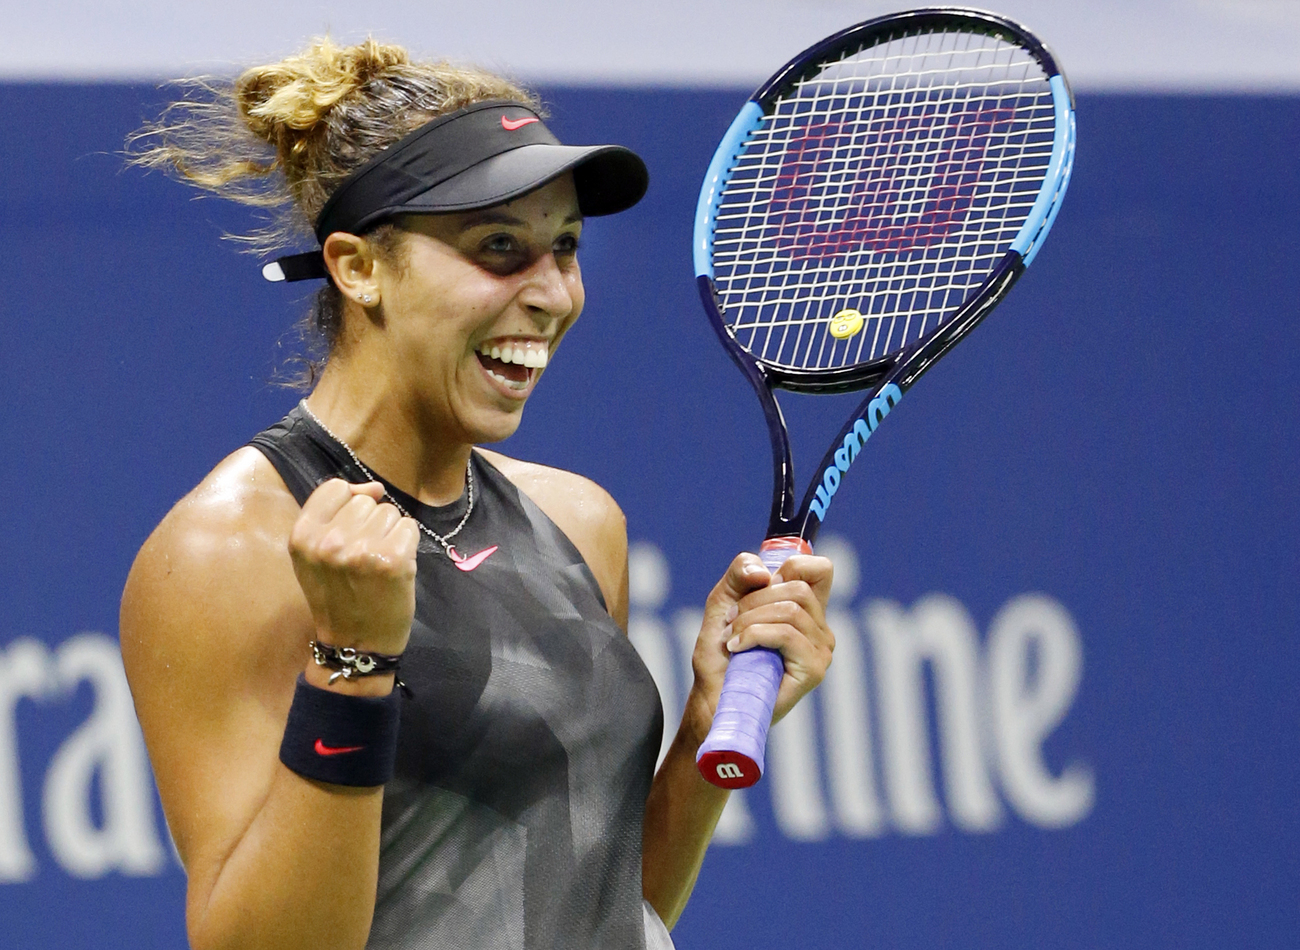 Madison Keys retrouve un quart de finale en Grand Chelem — US Open